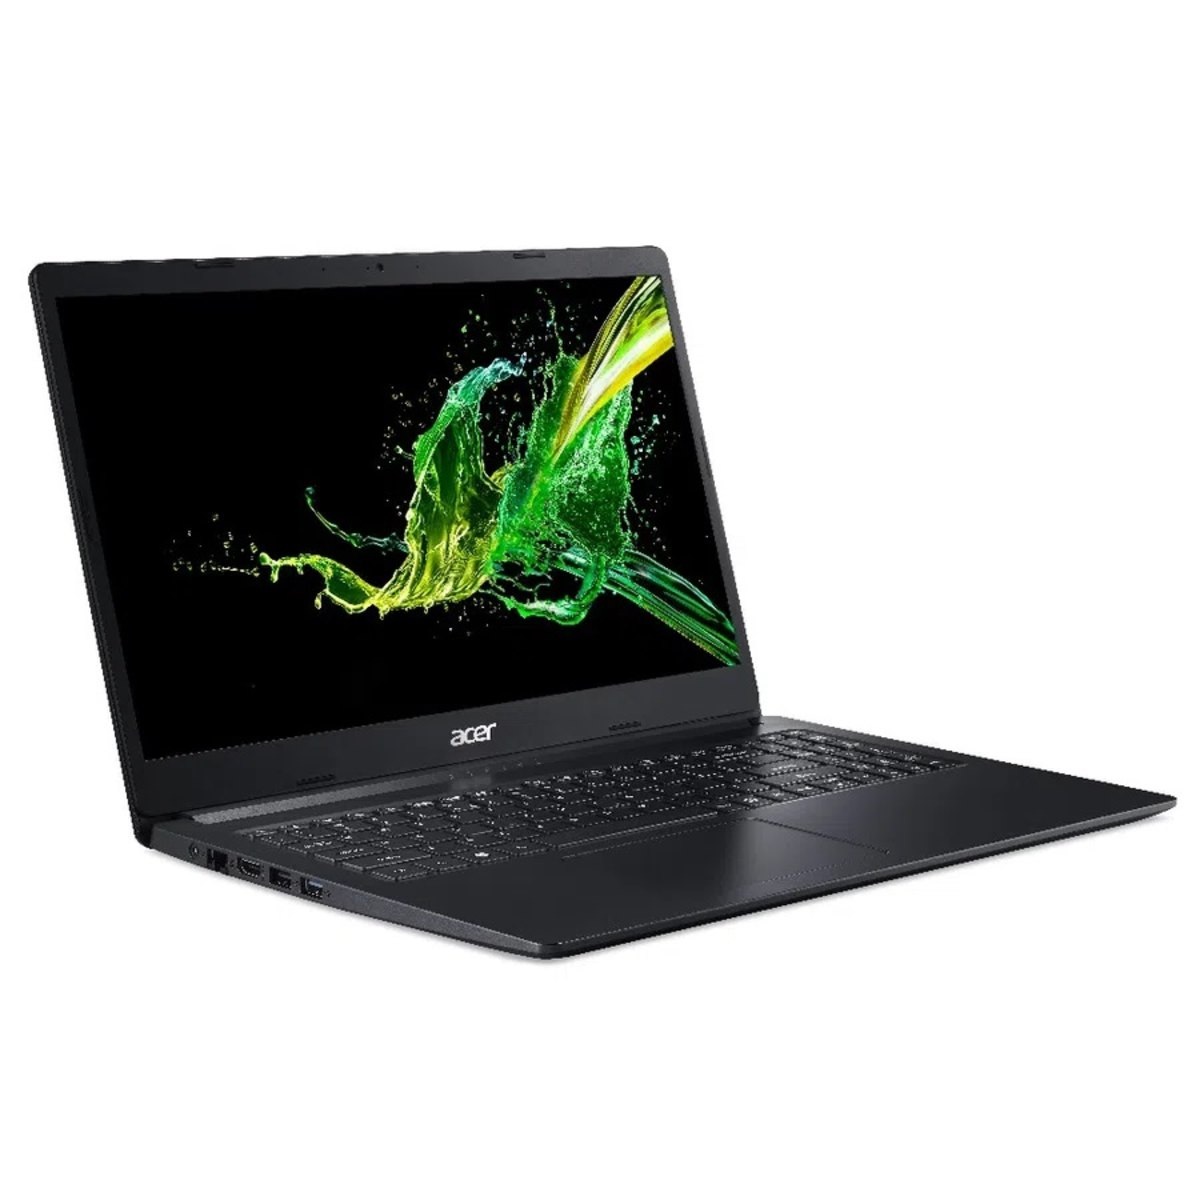 Notebook Acer A315 Intel Celeron N4000 Memoria 4gb Ssd 240gb Tela 15.6' Hd Endless Os